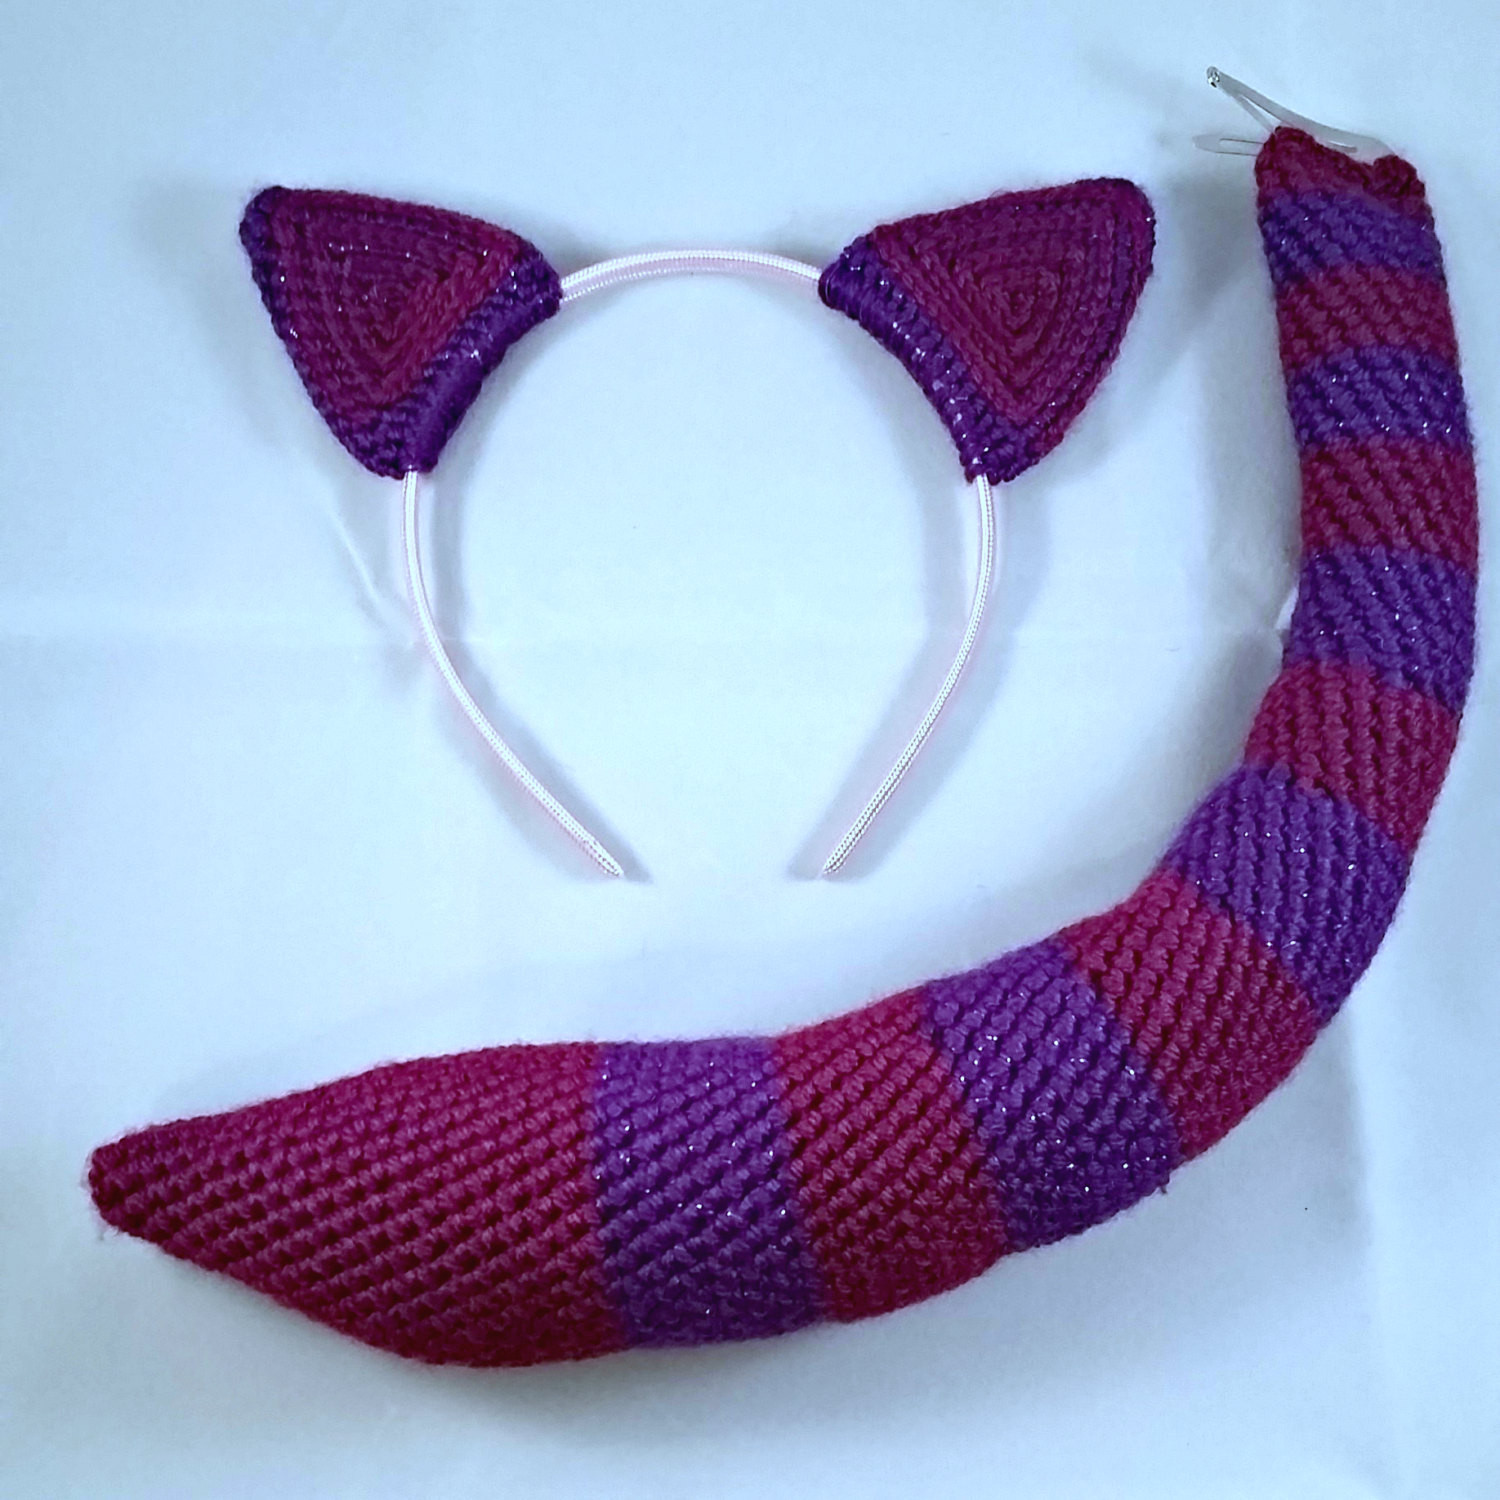 Cat Ears and Tail Whimsical Crochet Animal Costume